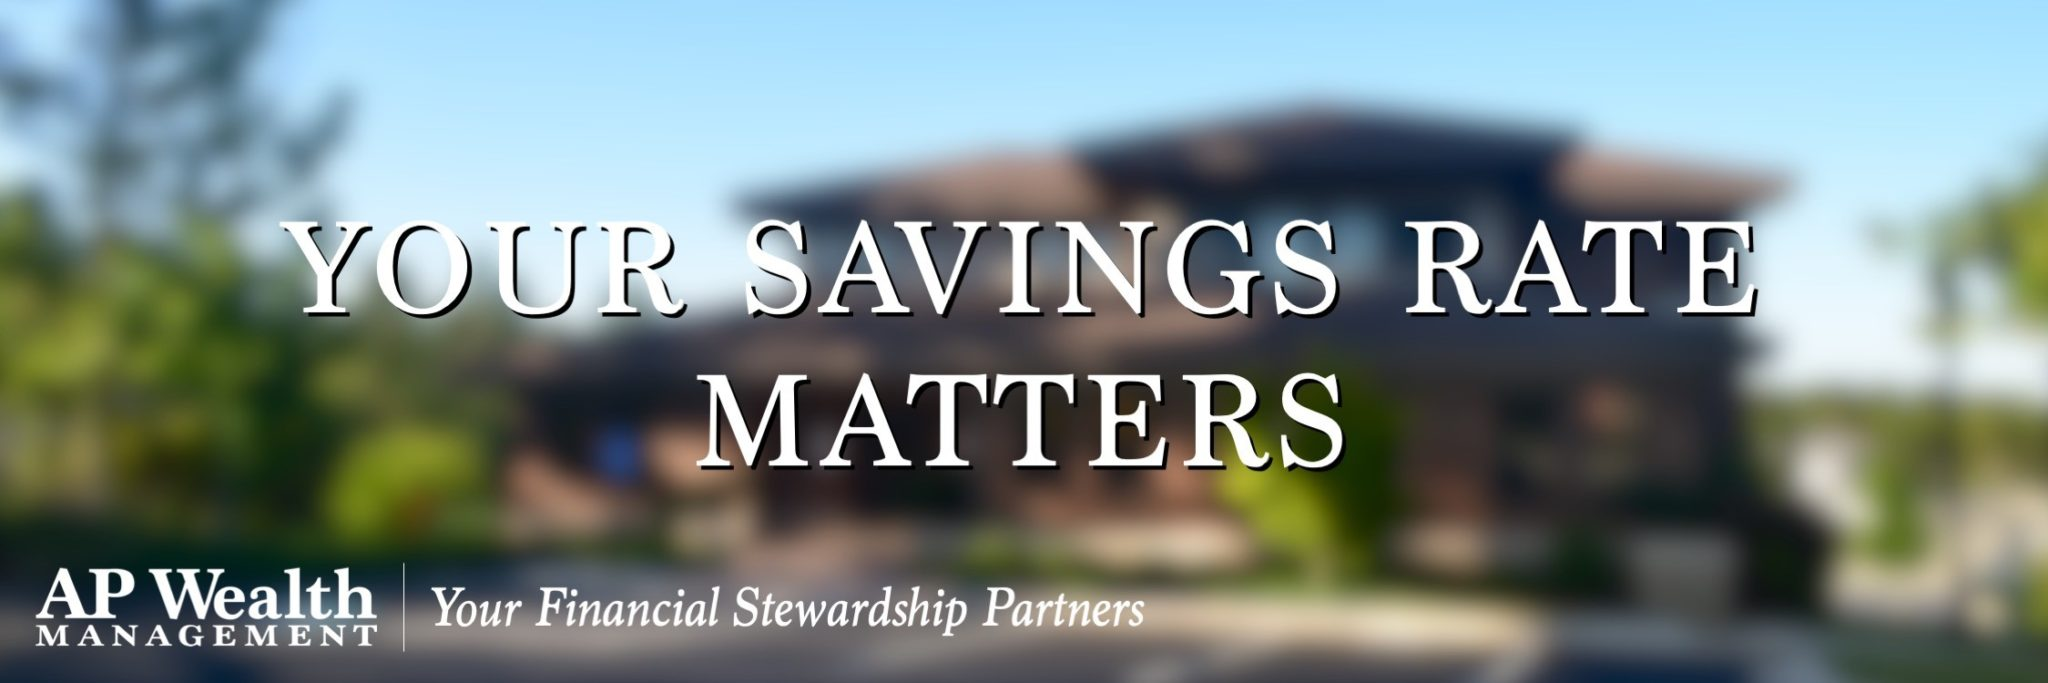 Your Savings Rate Matters